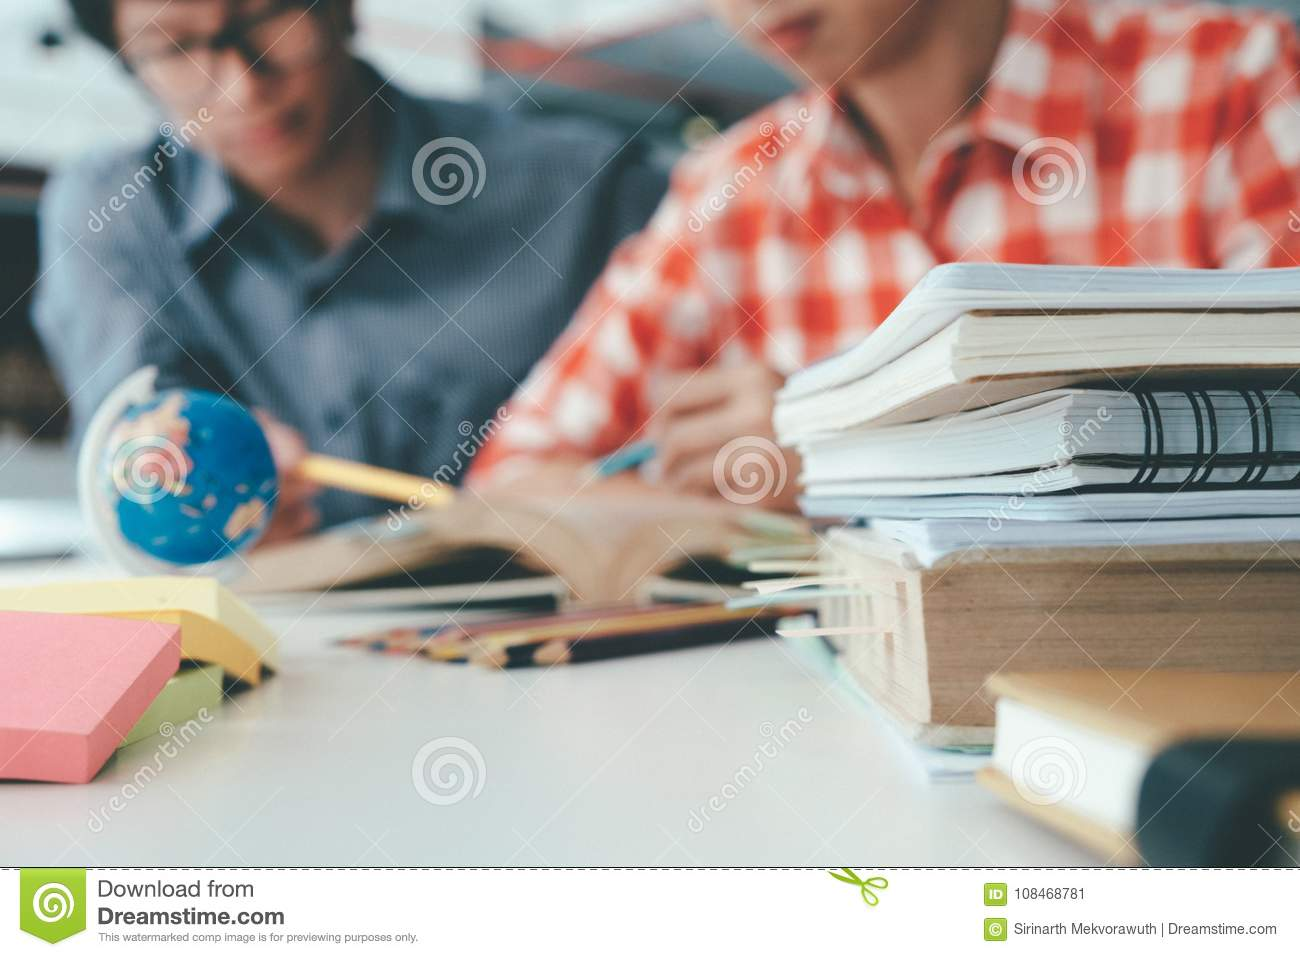 People, learning, education and school concept.